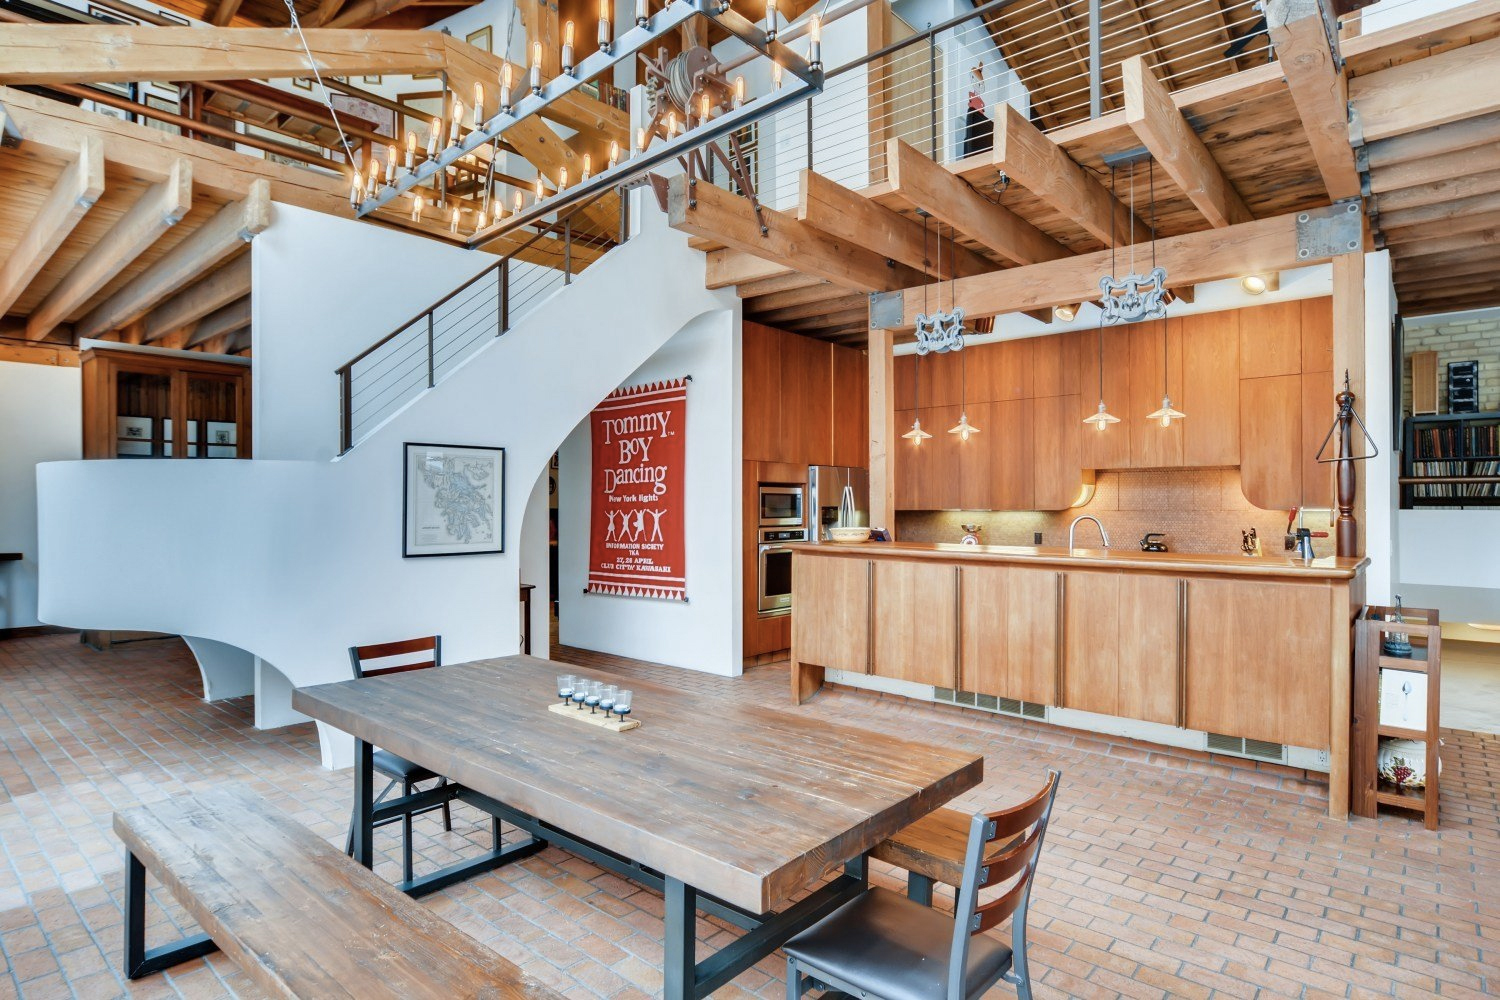 Converted carriage house for sale: 260 Maiden Lane, Saint Paul, MN 55102